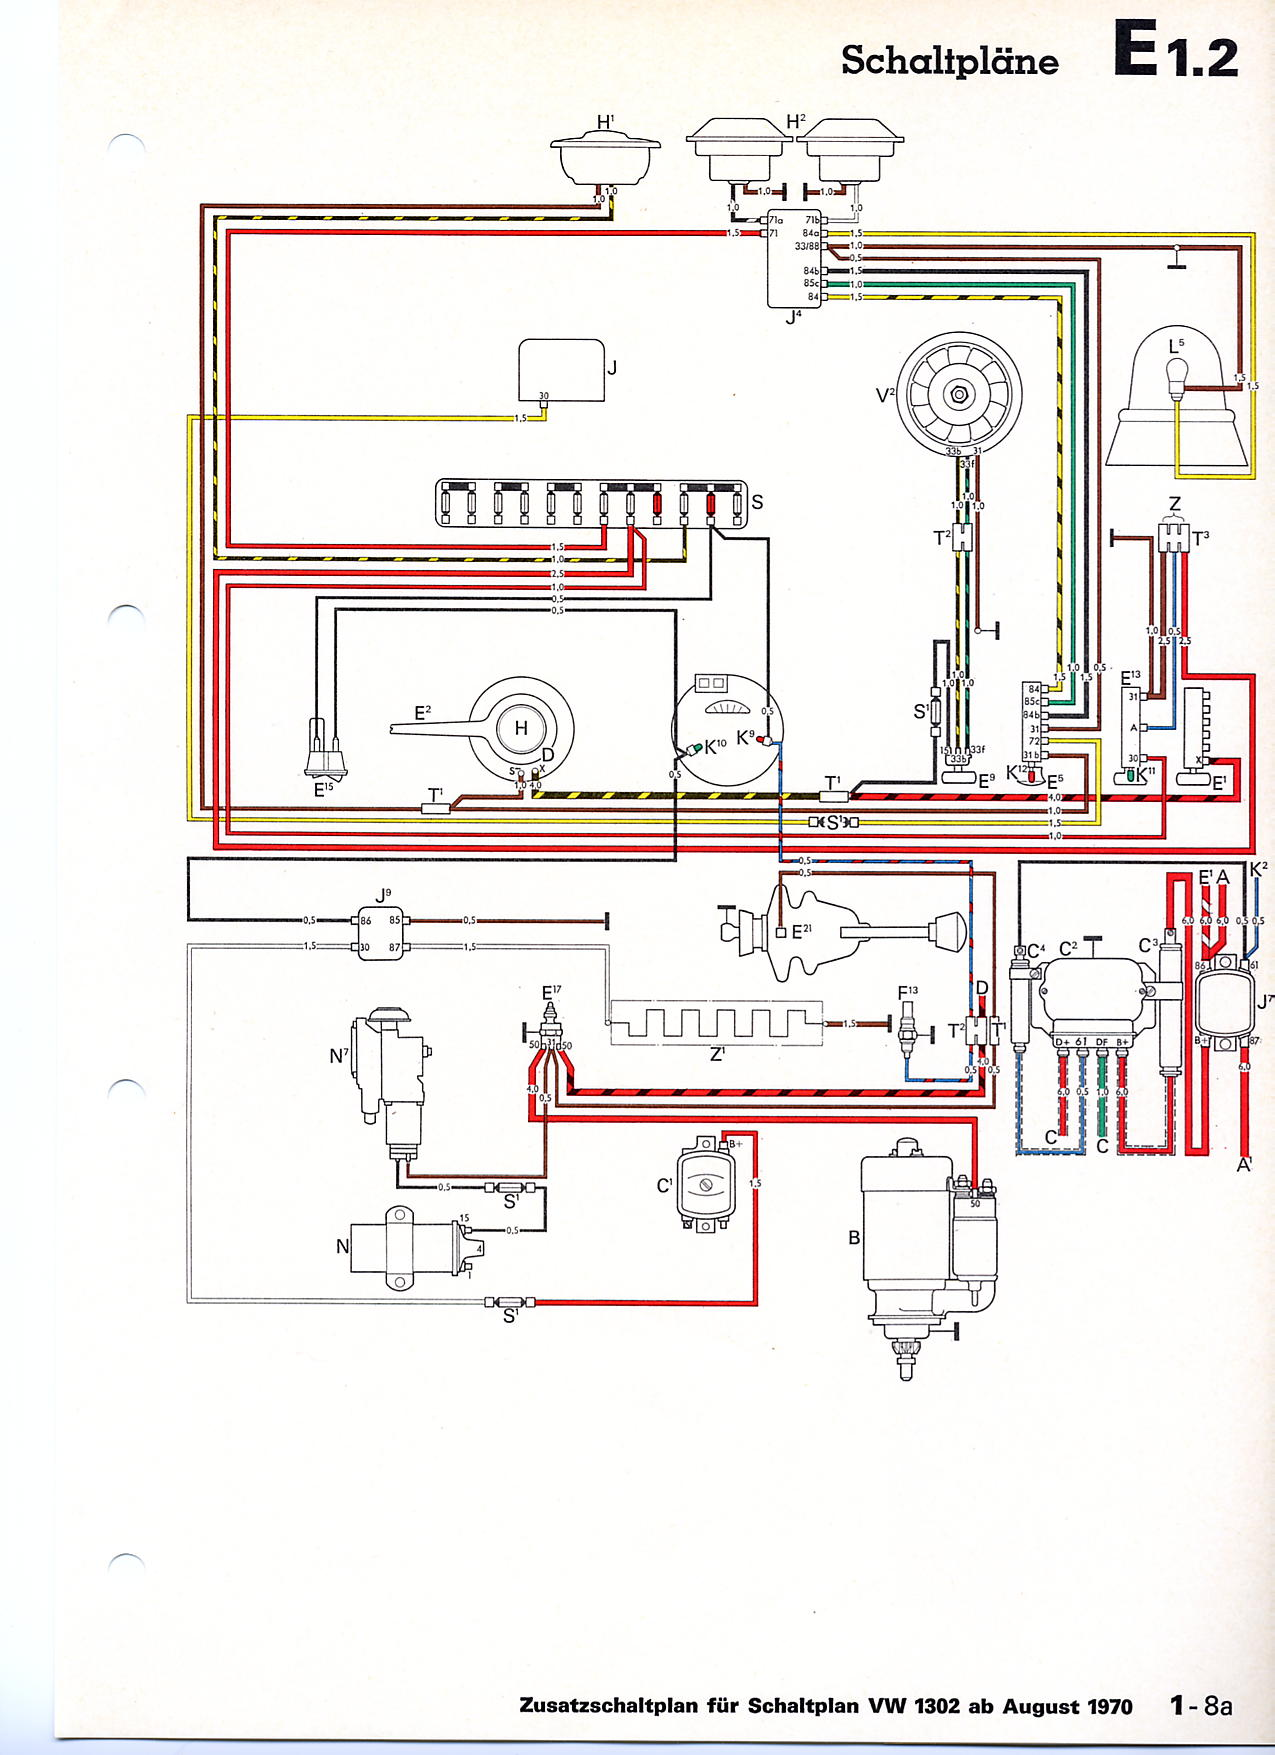 1 Wire Alternator Wiring Diagram 8n Auto Electrical Convetson For Ford 9n Tractor 12 Volt